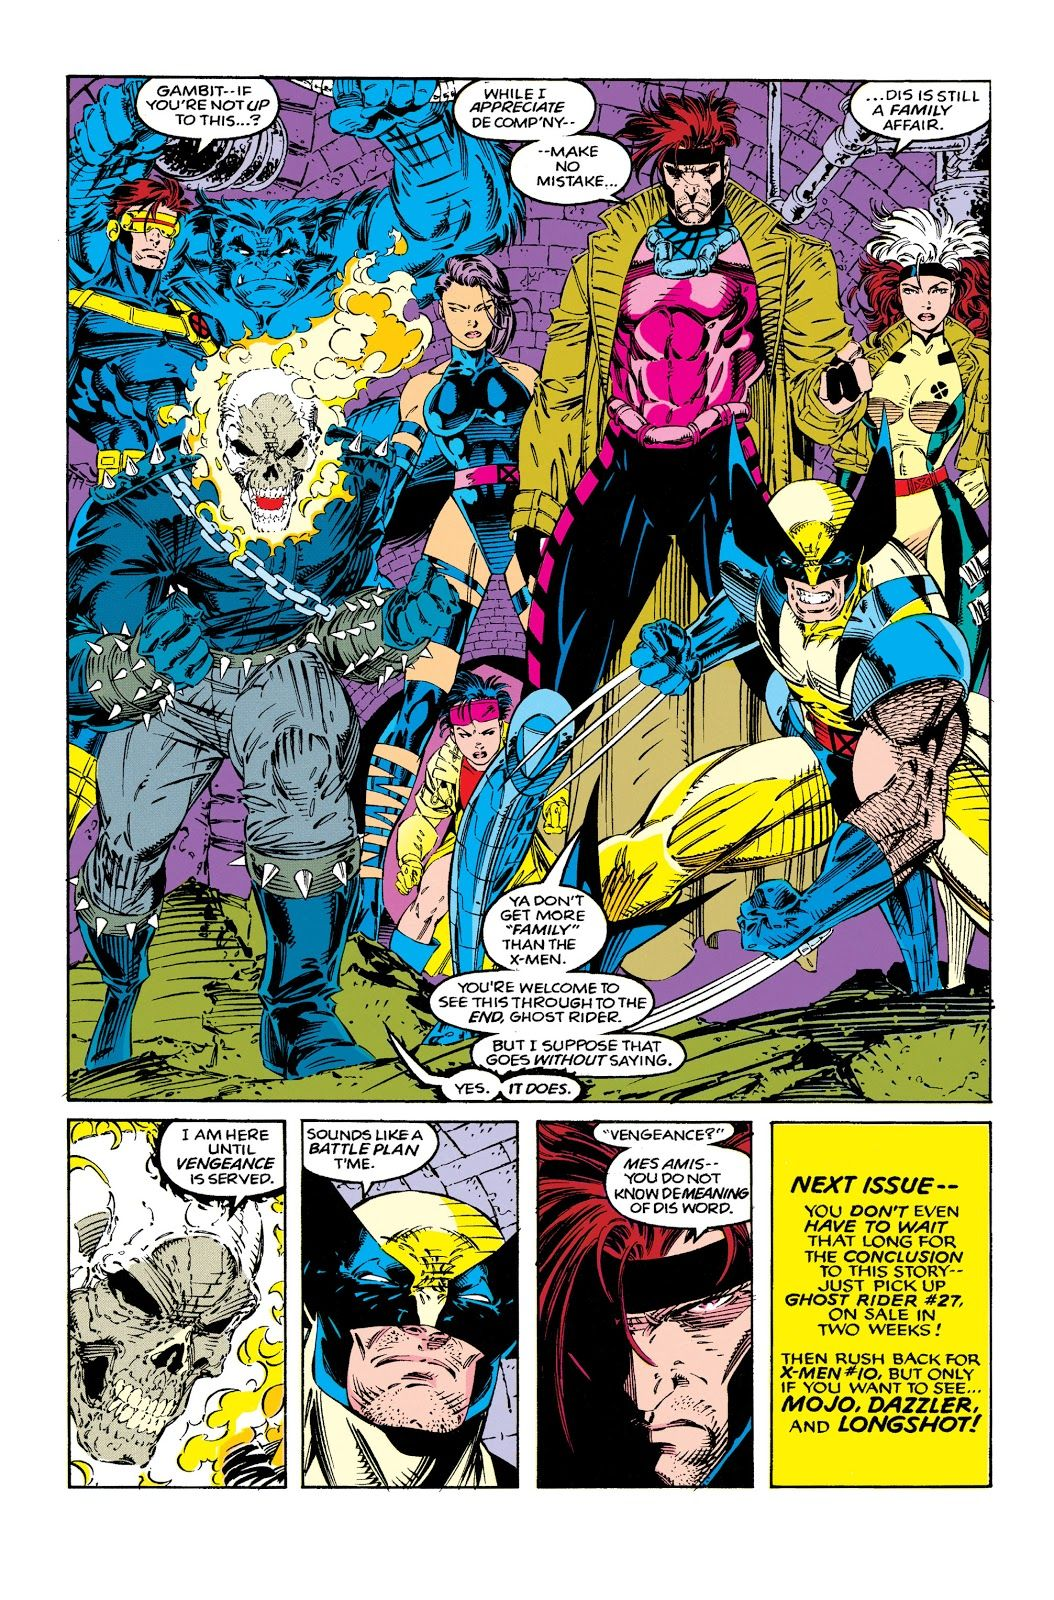 X Men 1991 Issue 9 Read X Men 1991 Issue 9 Comic Online In High Quality Comics X Men Marvel